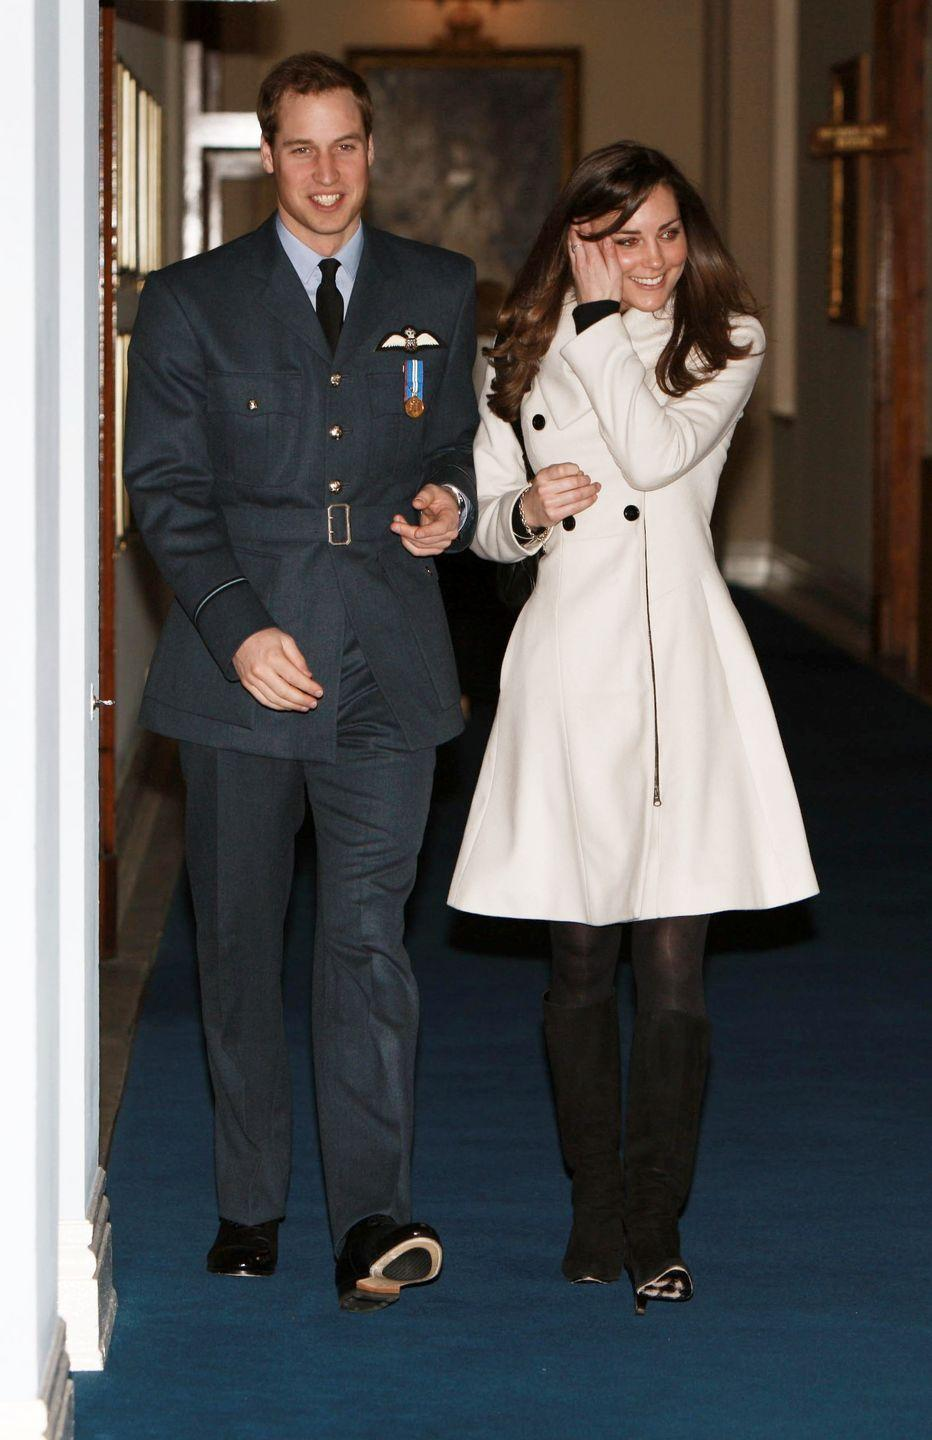 <p>Middleton and Prince William had their first public outing since before the breakup. She watched him become an official pilot at the Central Flying School graduation ceremony.</p>